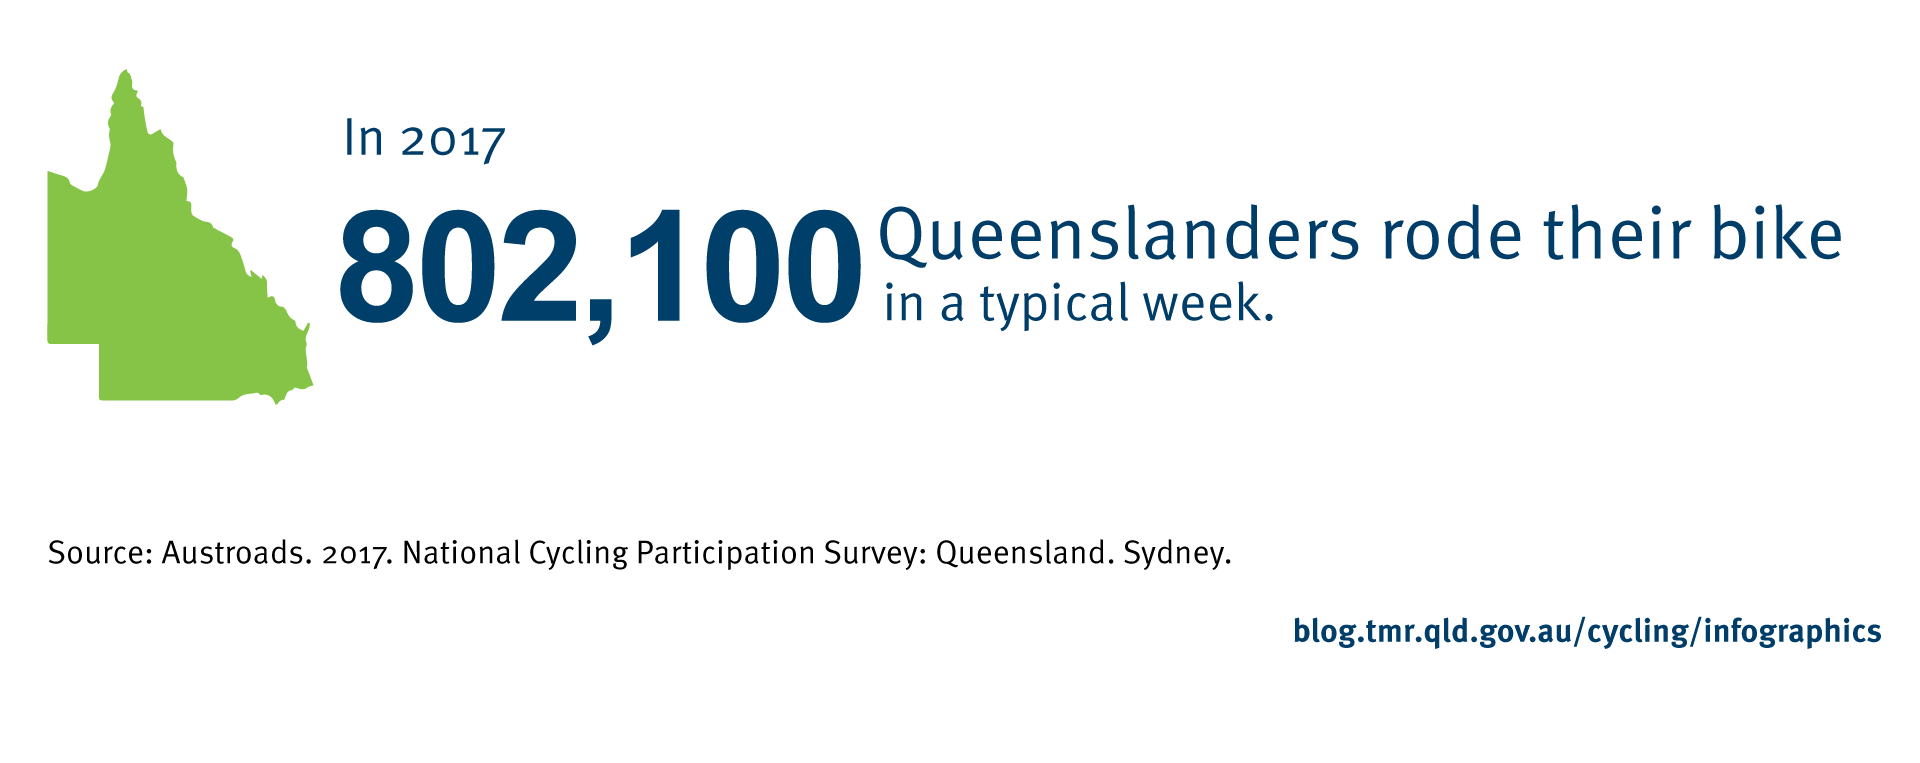 In 2017, 802 100 Queenslanders rode their bike in a typical week. Source: Austroads. 2017. National Cycling Participation Survey: Queensland. Sydney.